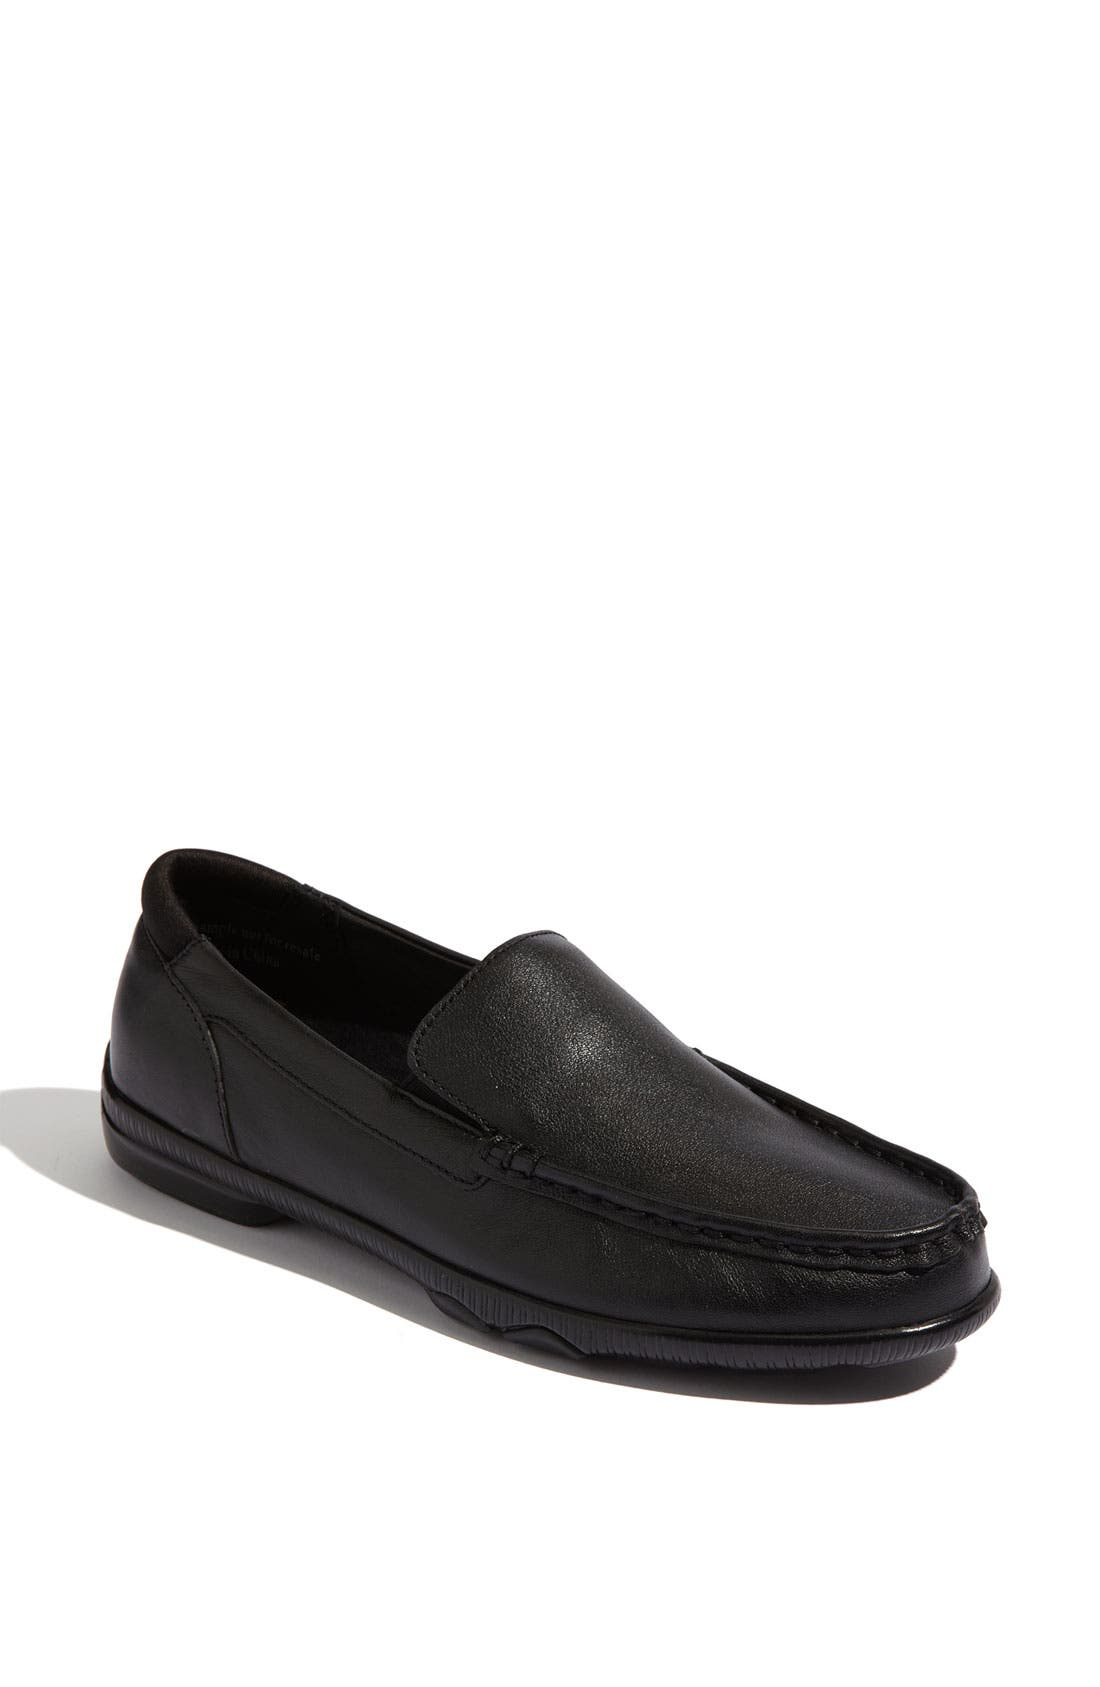 Main Image - Aetrex 'Kimberly Essence' Loafer